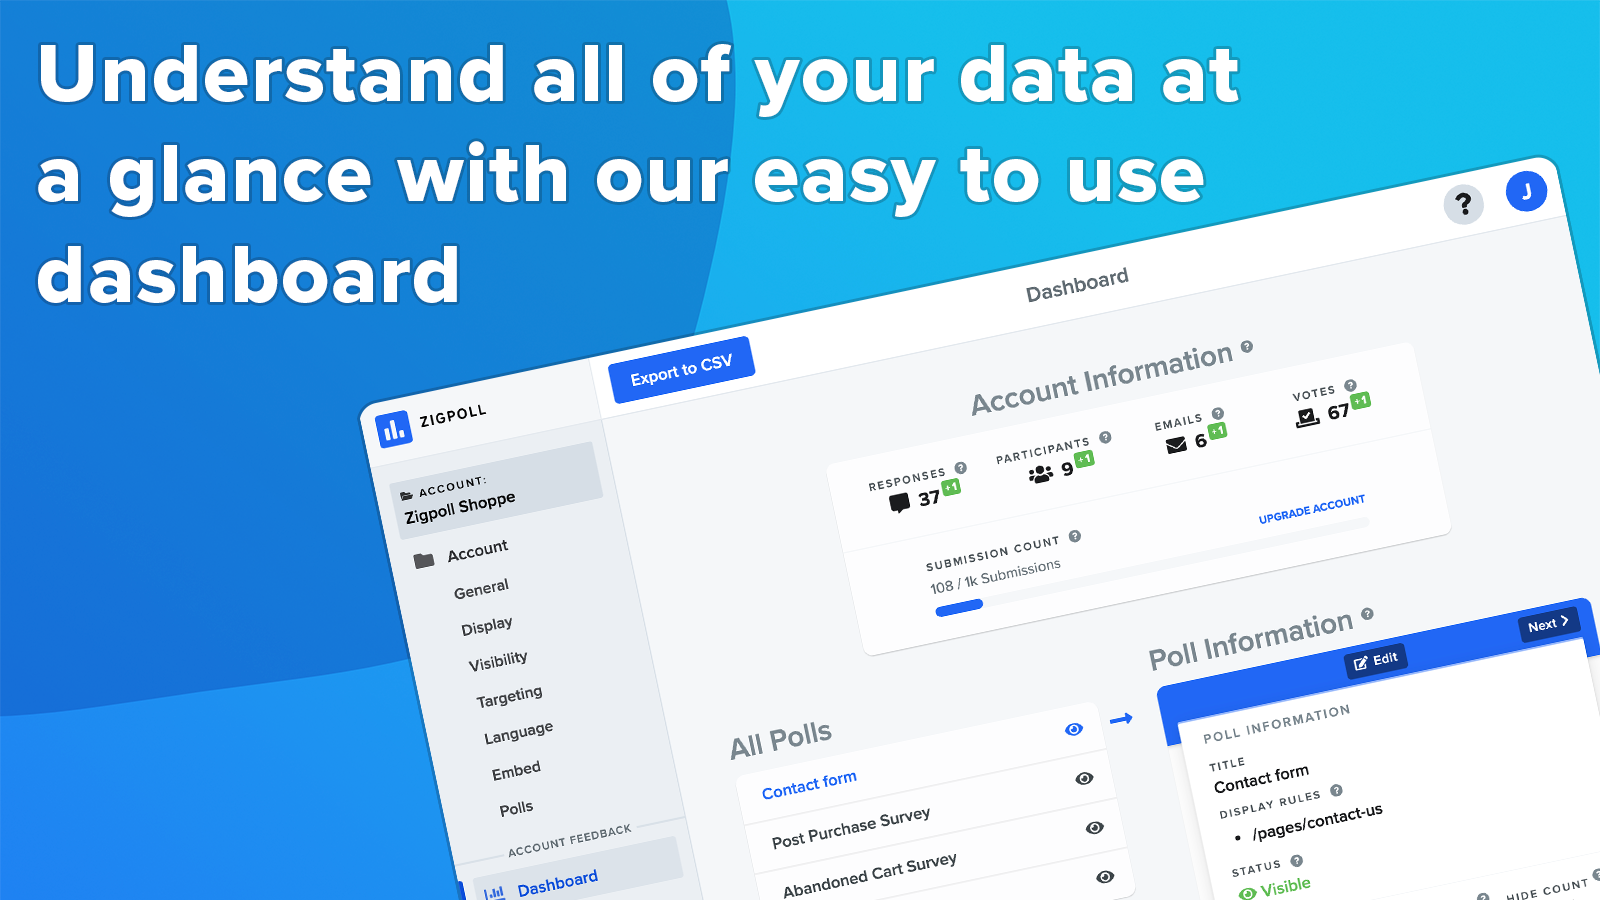 Understand all of your data at a glance with our easy to use das